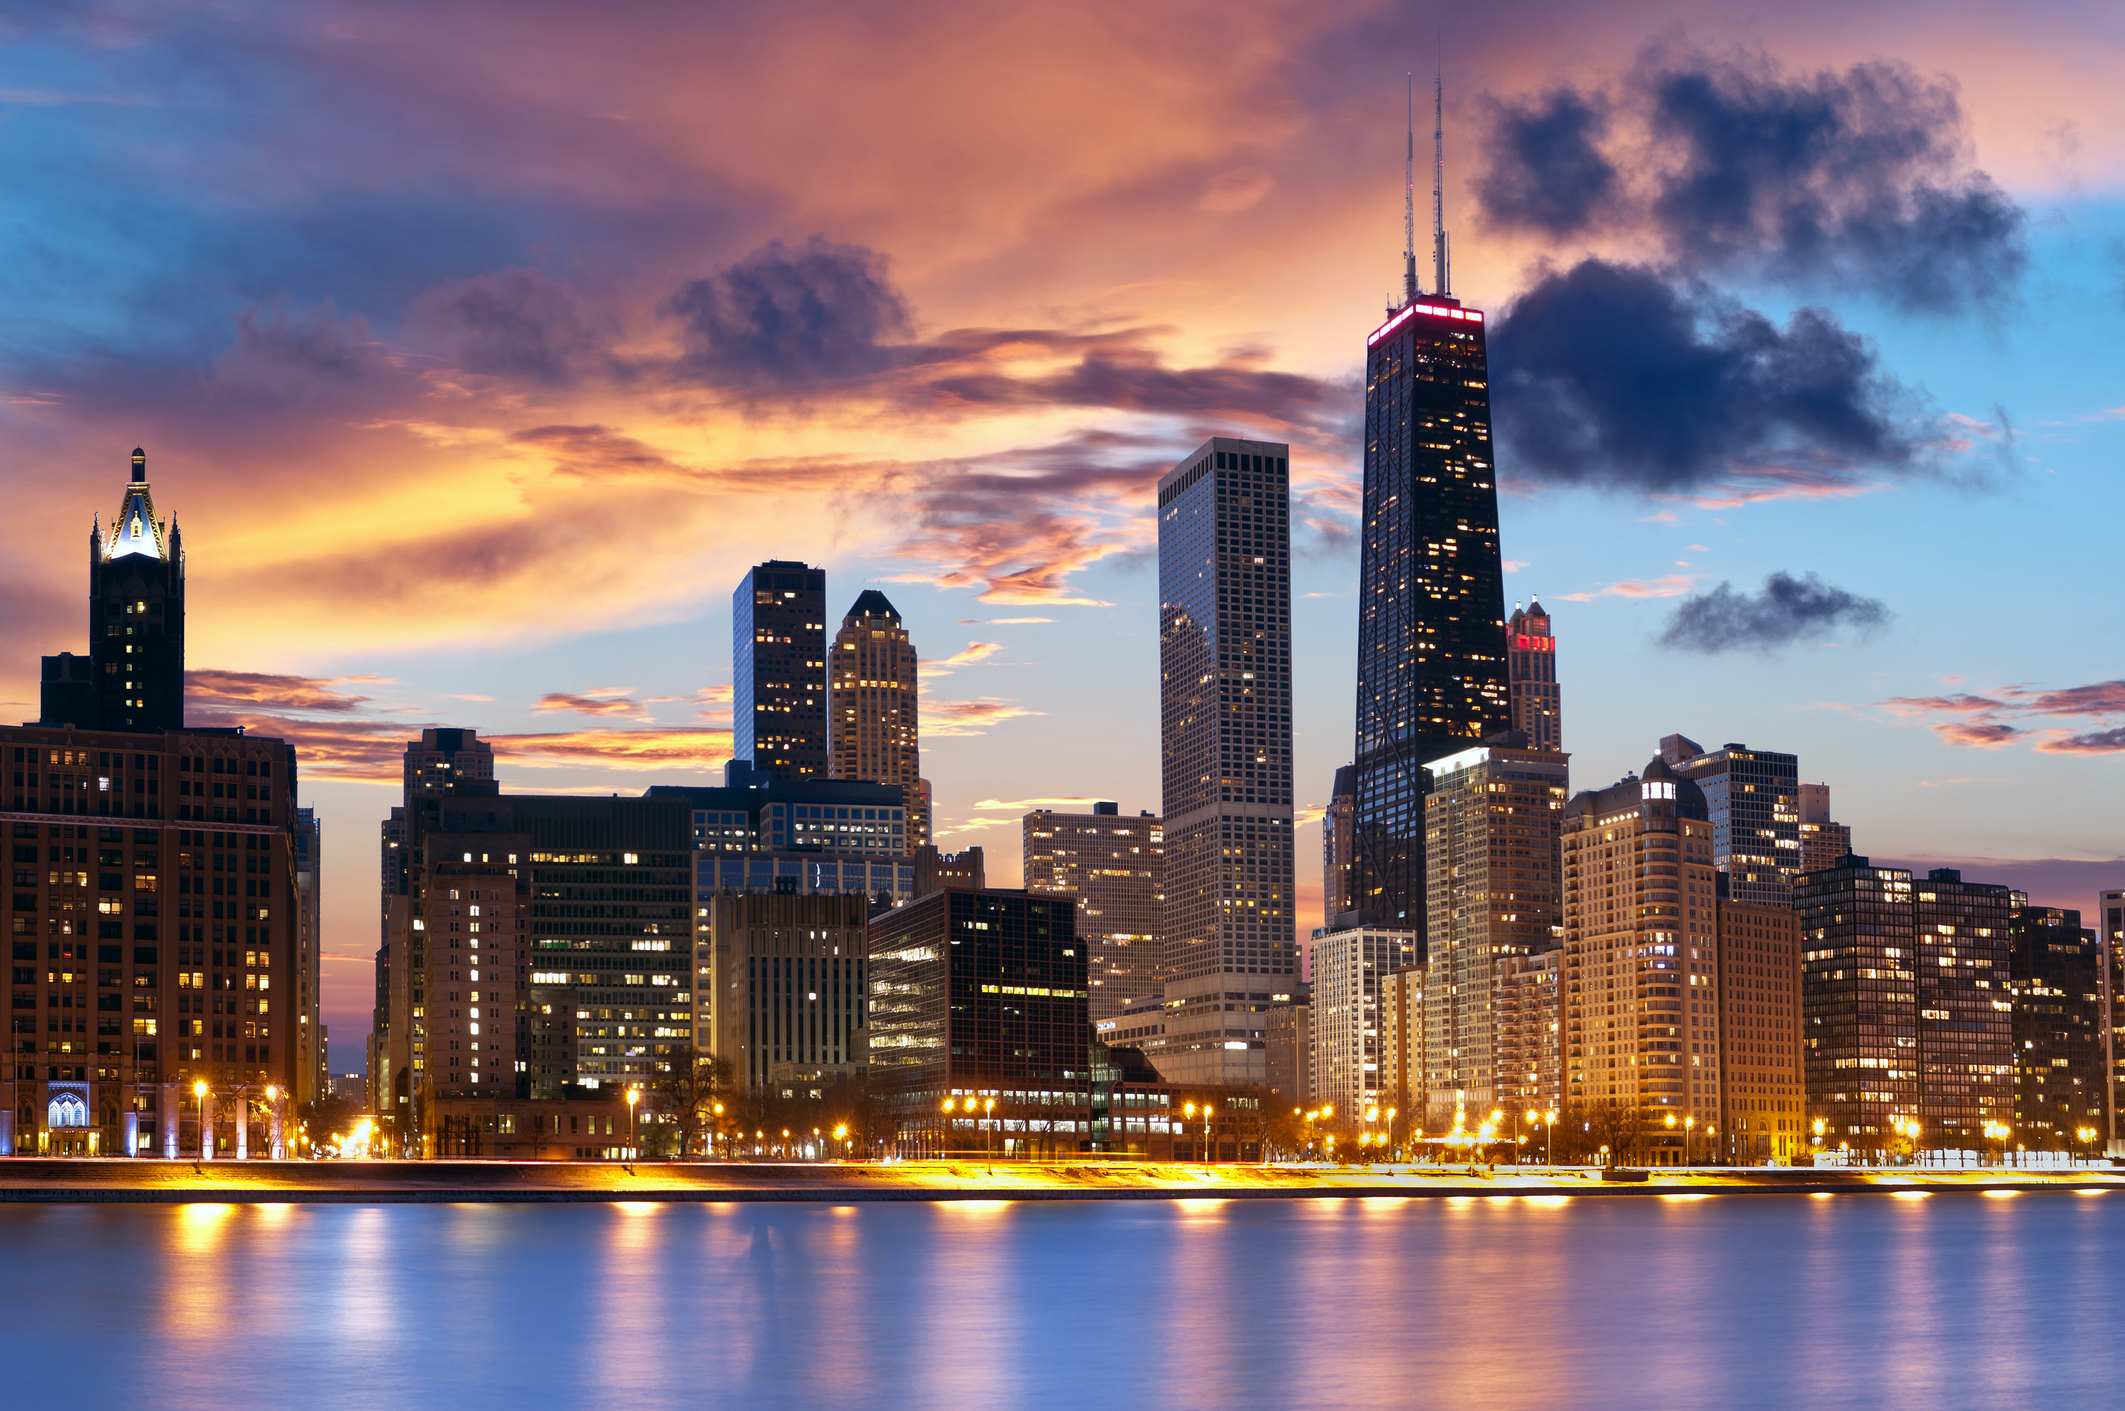 Our home of Chicago, Illinois, is ground-zero of financial market innovation in the 20th and 21st centuries.